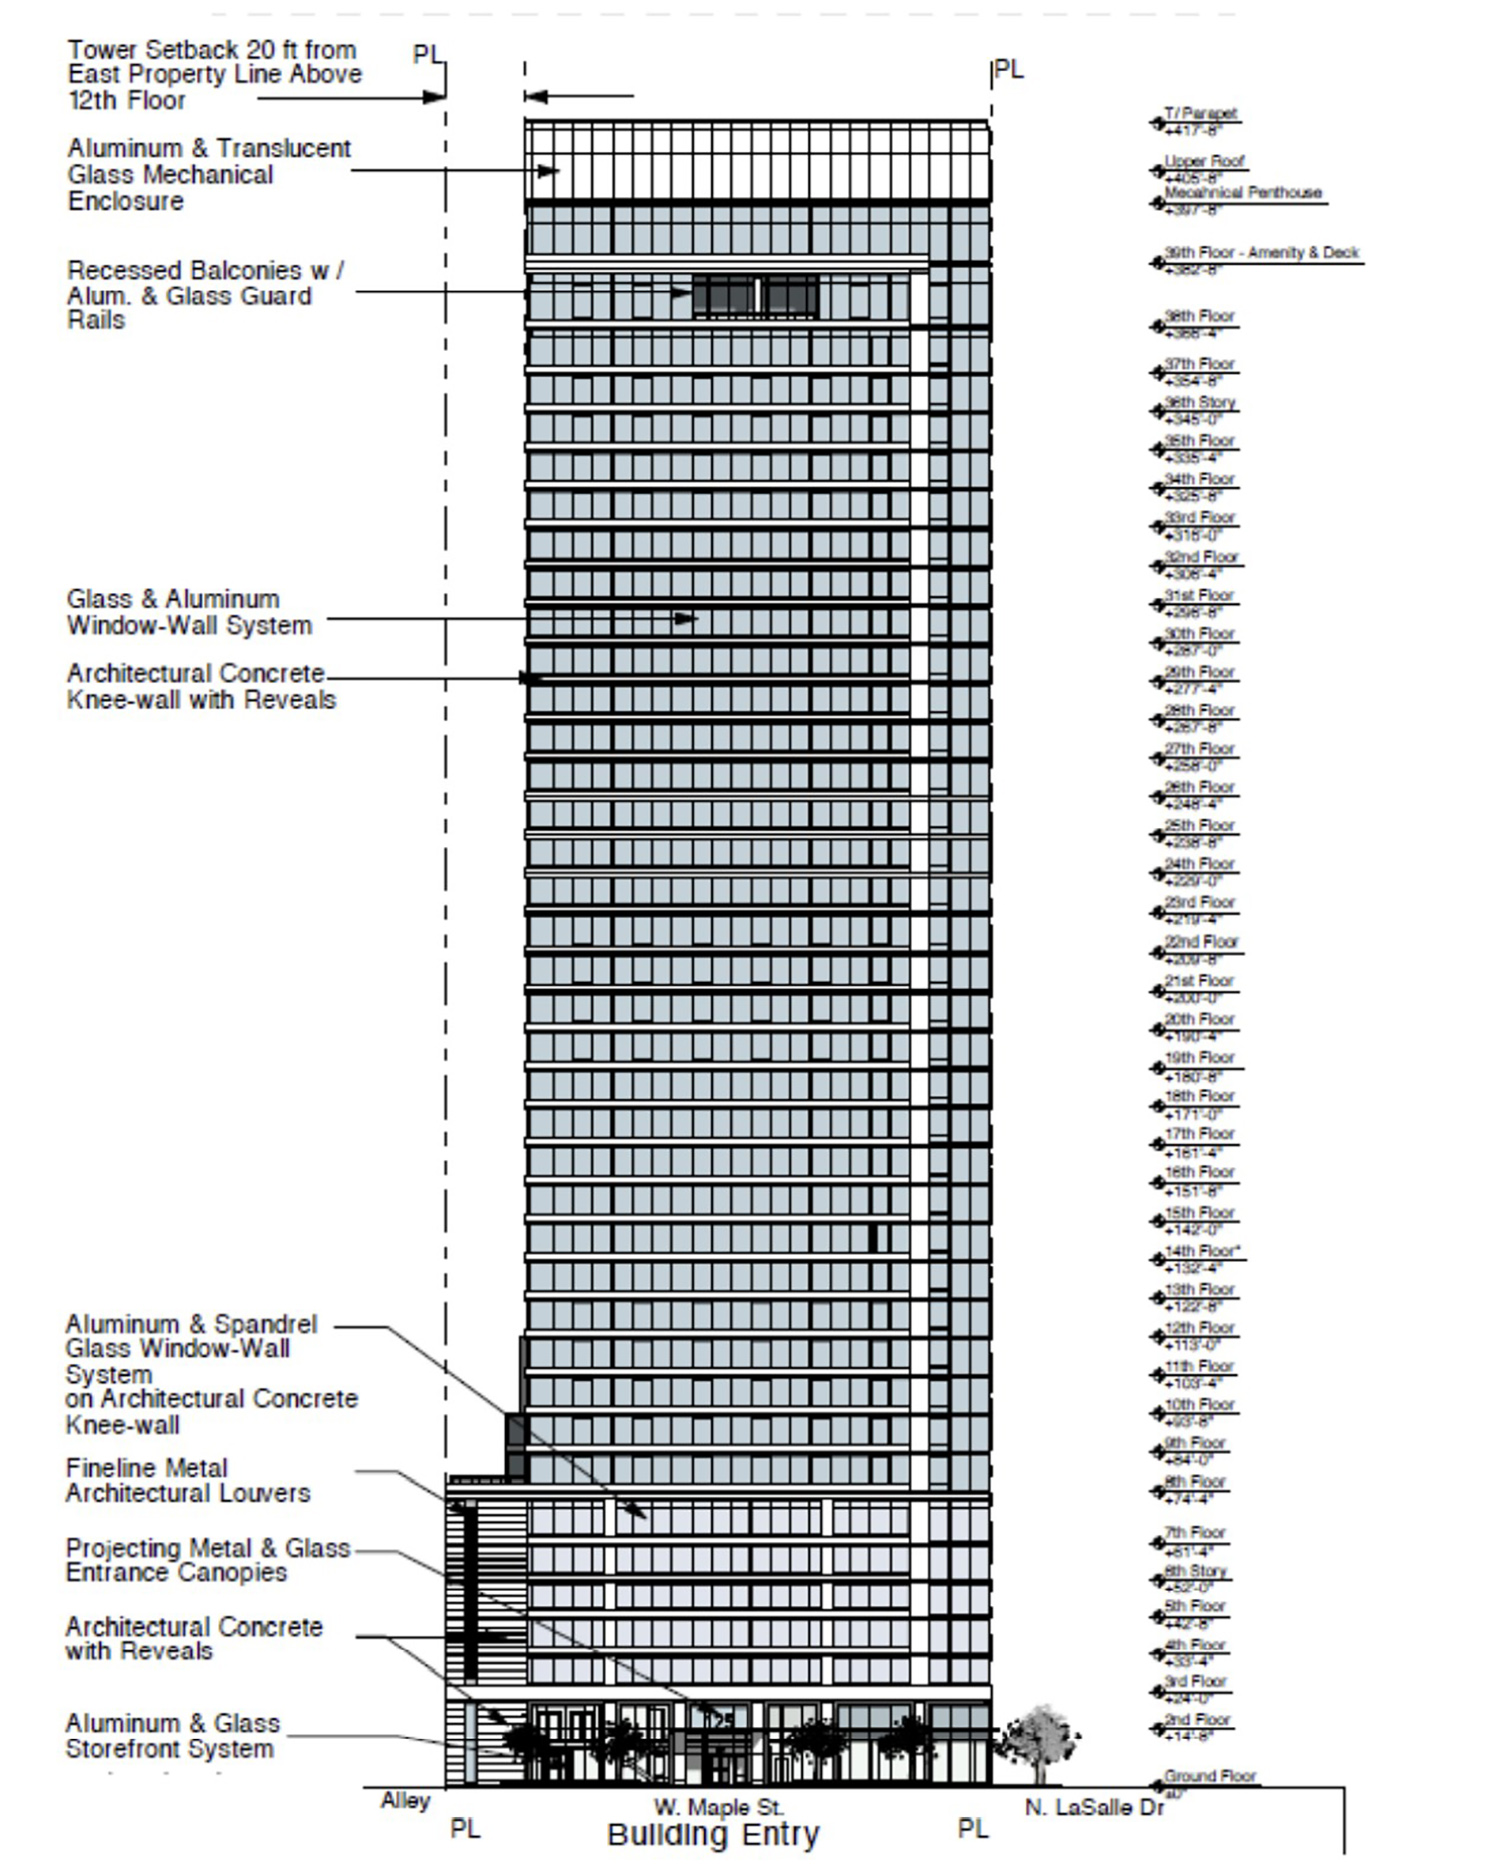 North Elevation for 125 W Maple Street. Drawing by Pappageorge Haymes